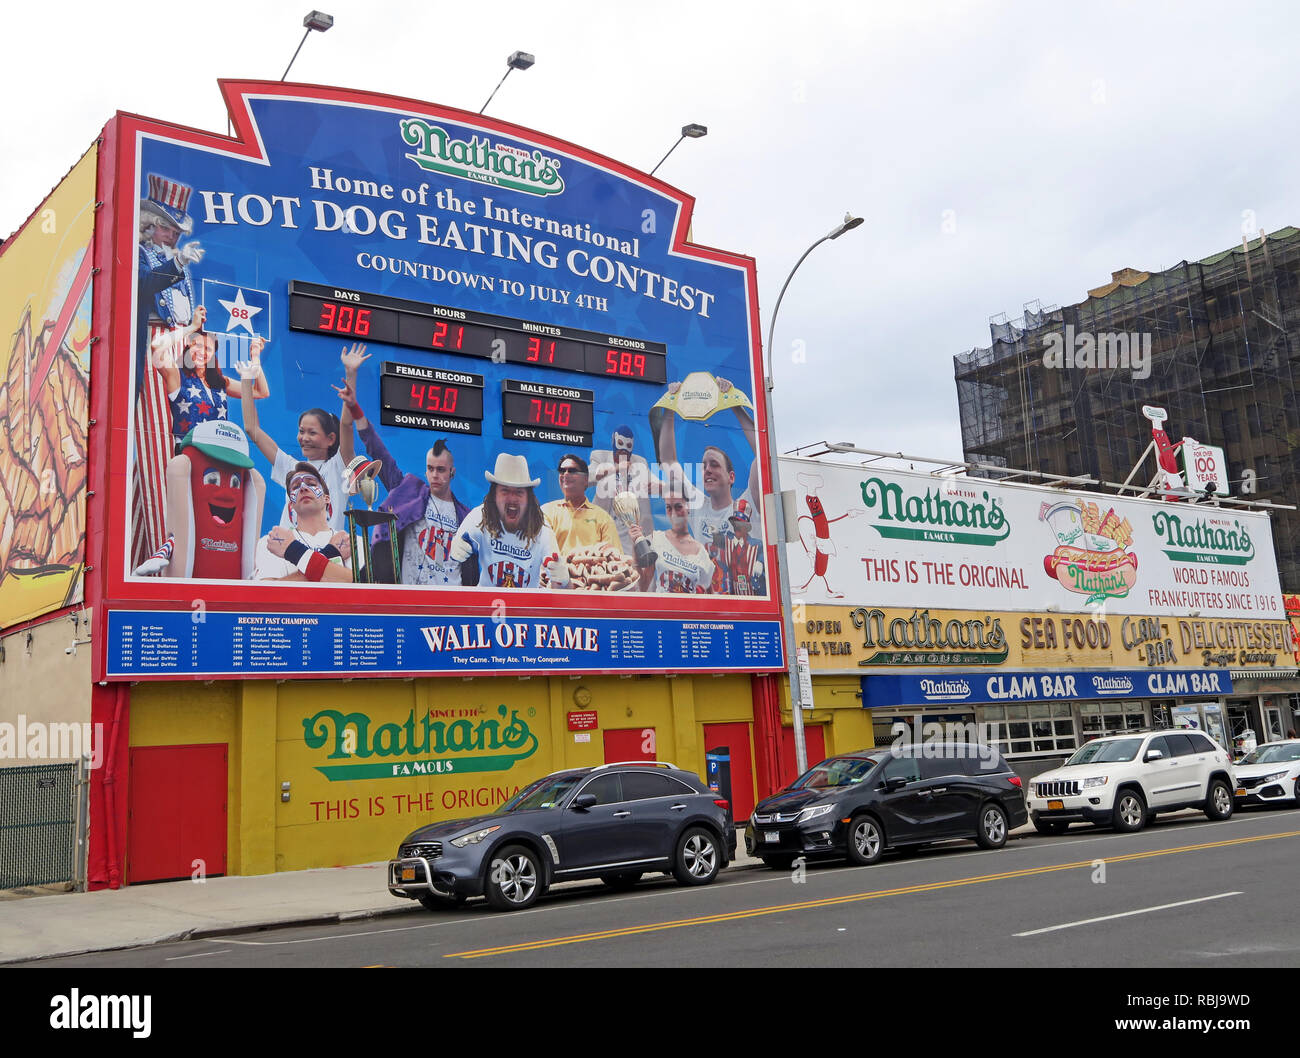 Nathans Handwerker Famous Hotdog Frankfurters Hotdog eating contest, Coney Island, Borough of Brooklyn, New York, NY, USA - Stock Image